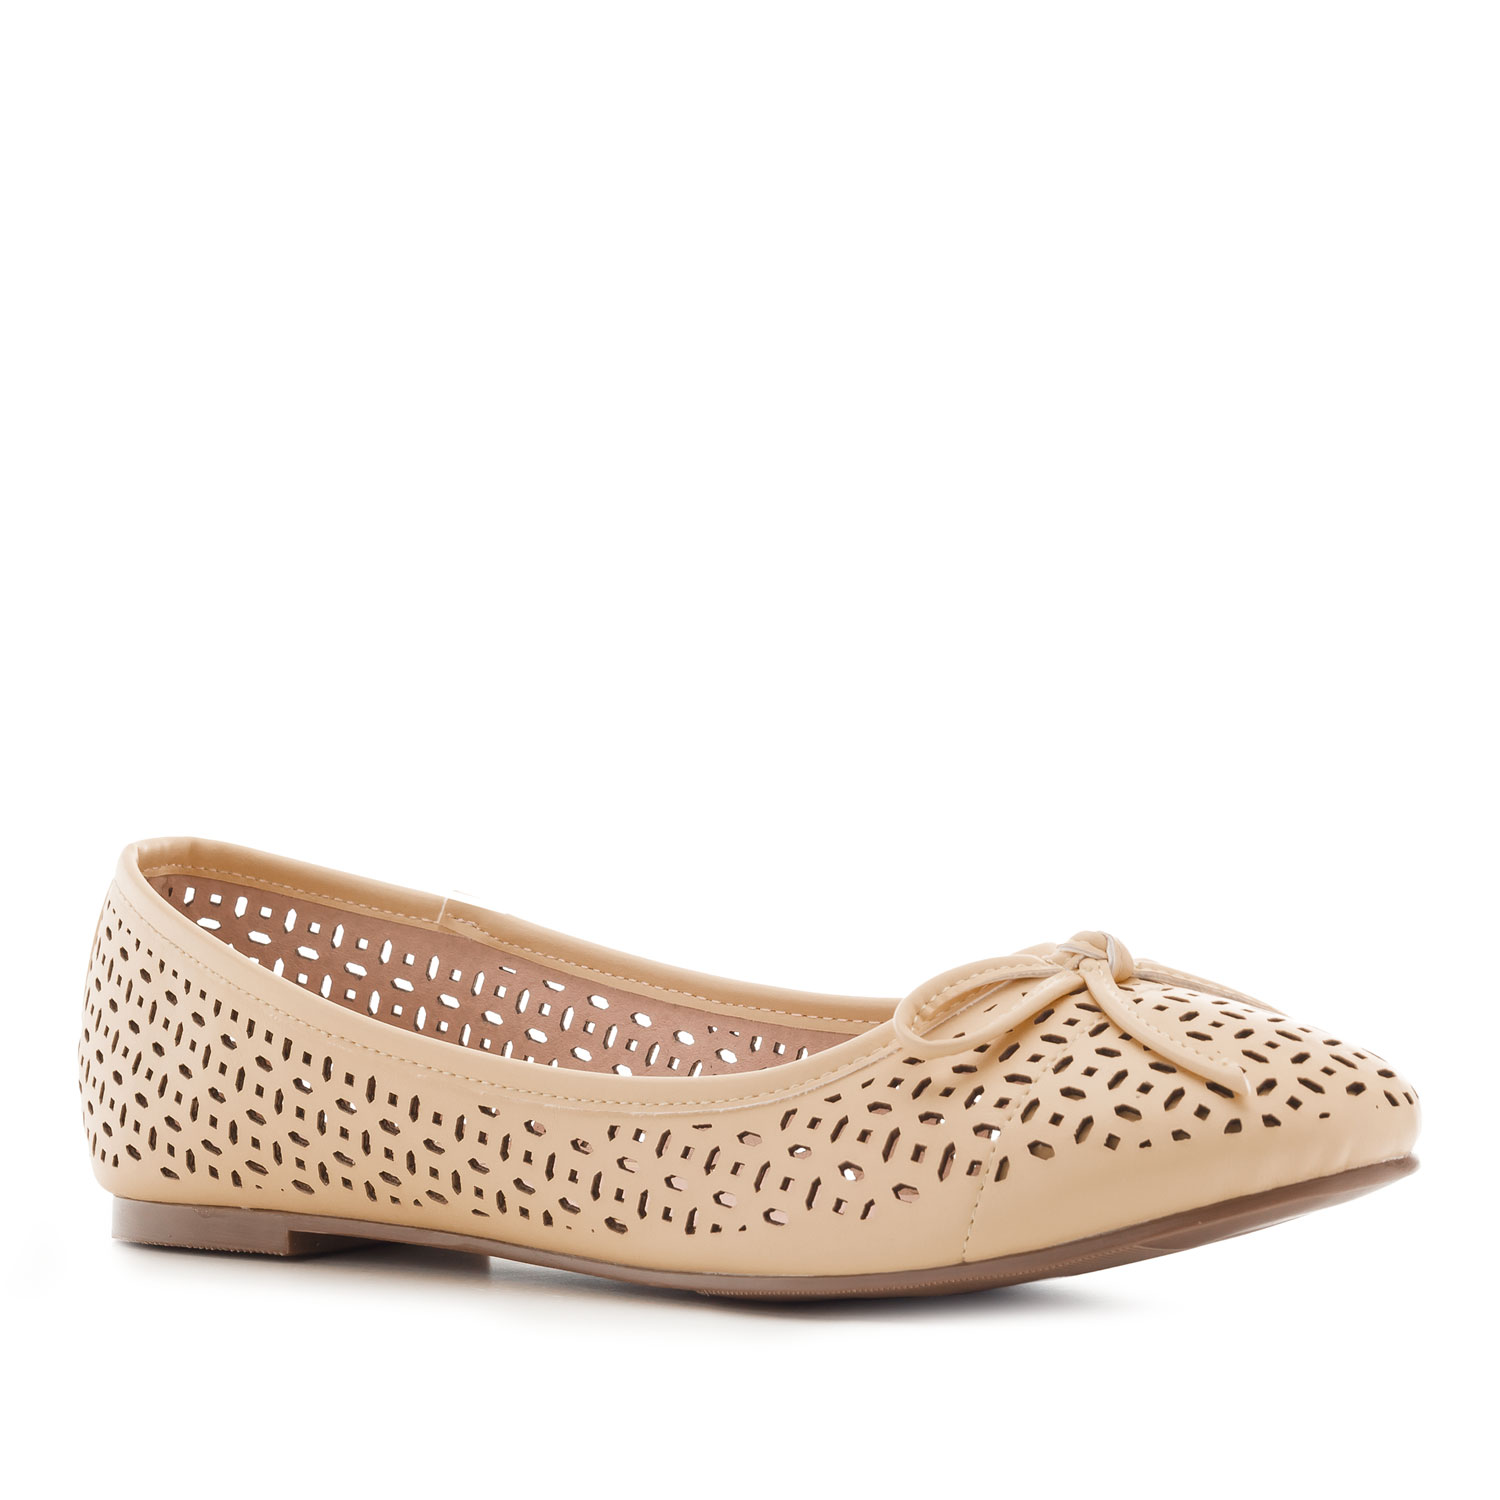 Die-cut Ballet Flats in Beige faux Leather